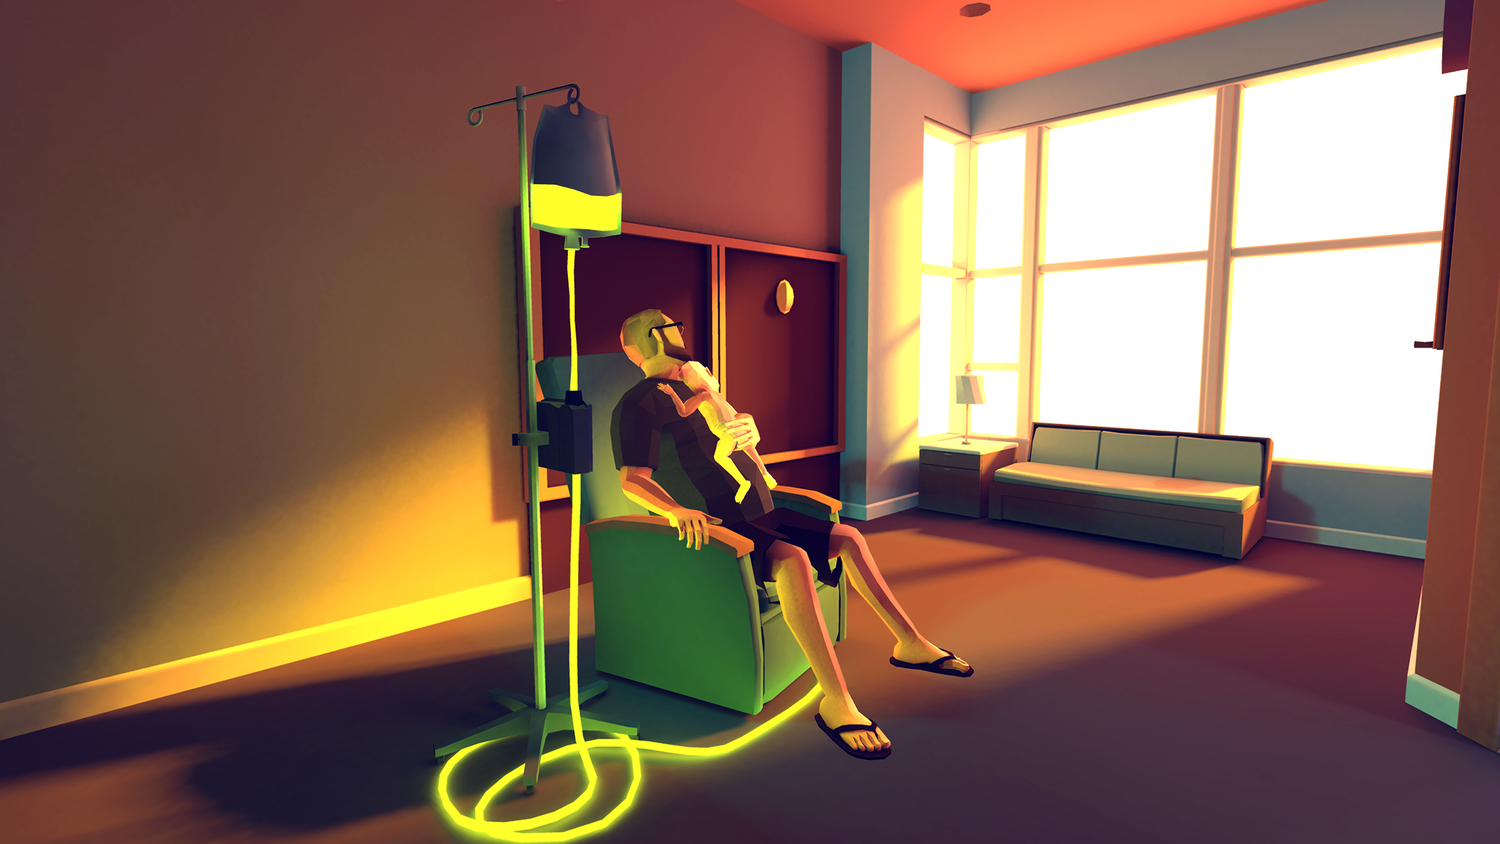 Ryan and Joel at the hospital, in a scene from That Dragon, Cancer. Image courtesy of The Dragon, Cancer and Numinous Games